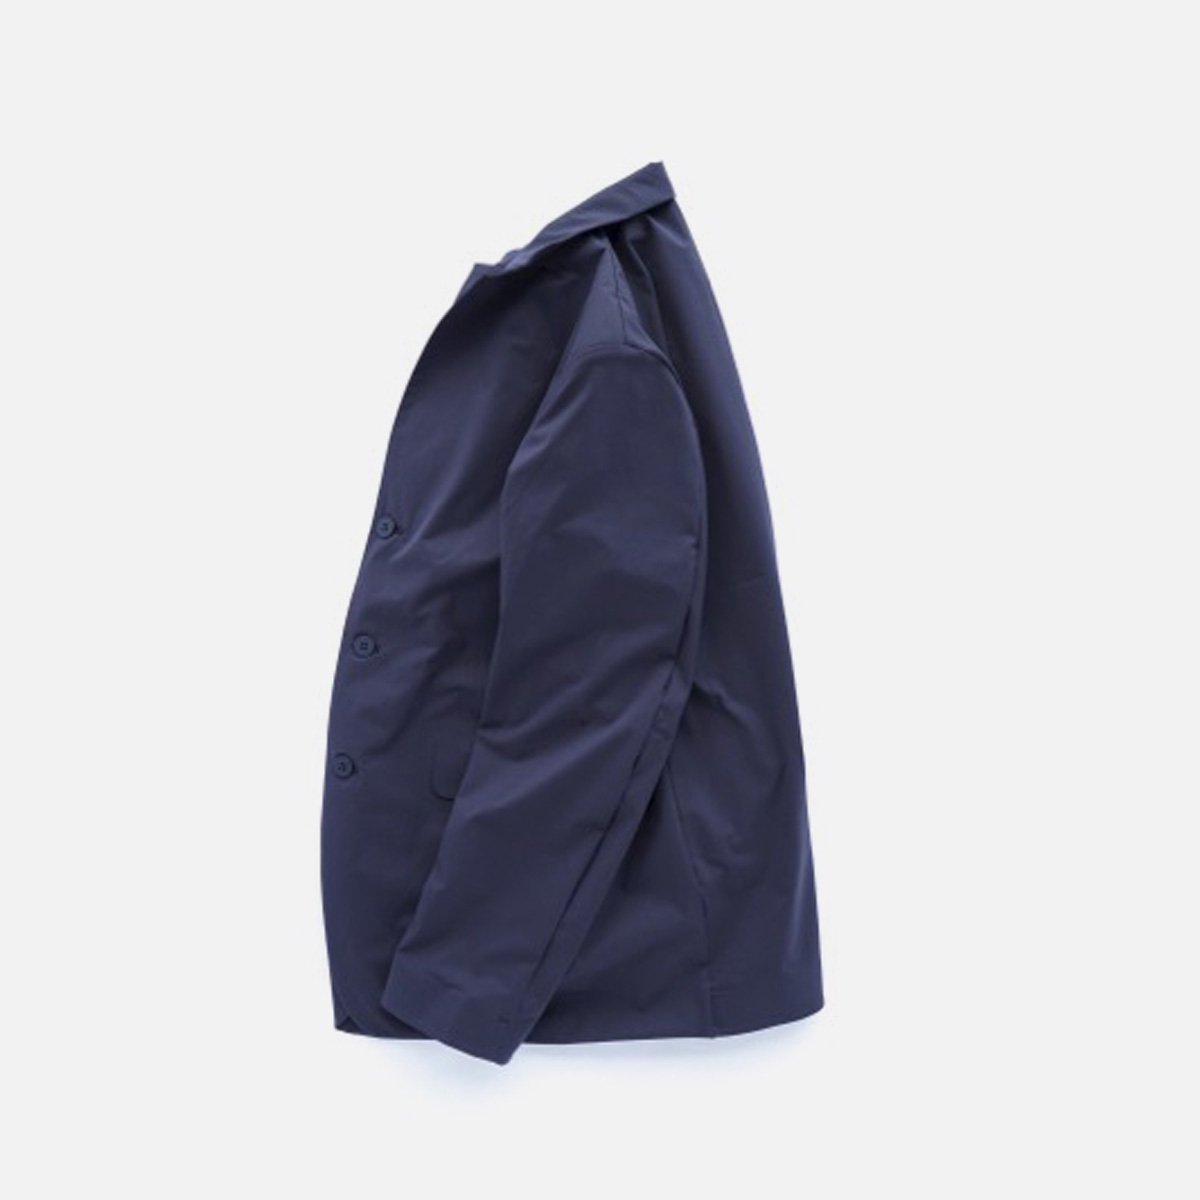 DESCENTE PAUSE PACKBLE JACKET (NAVY)3